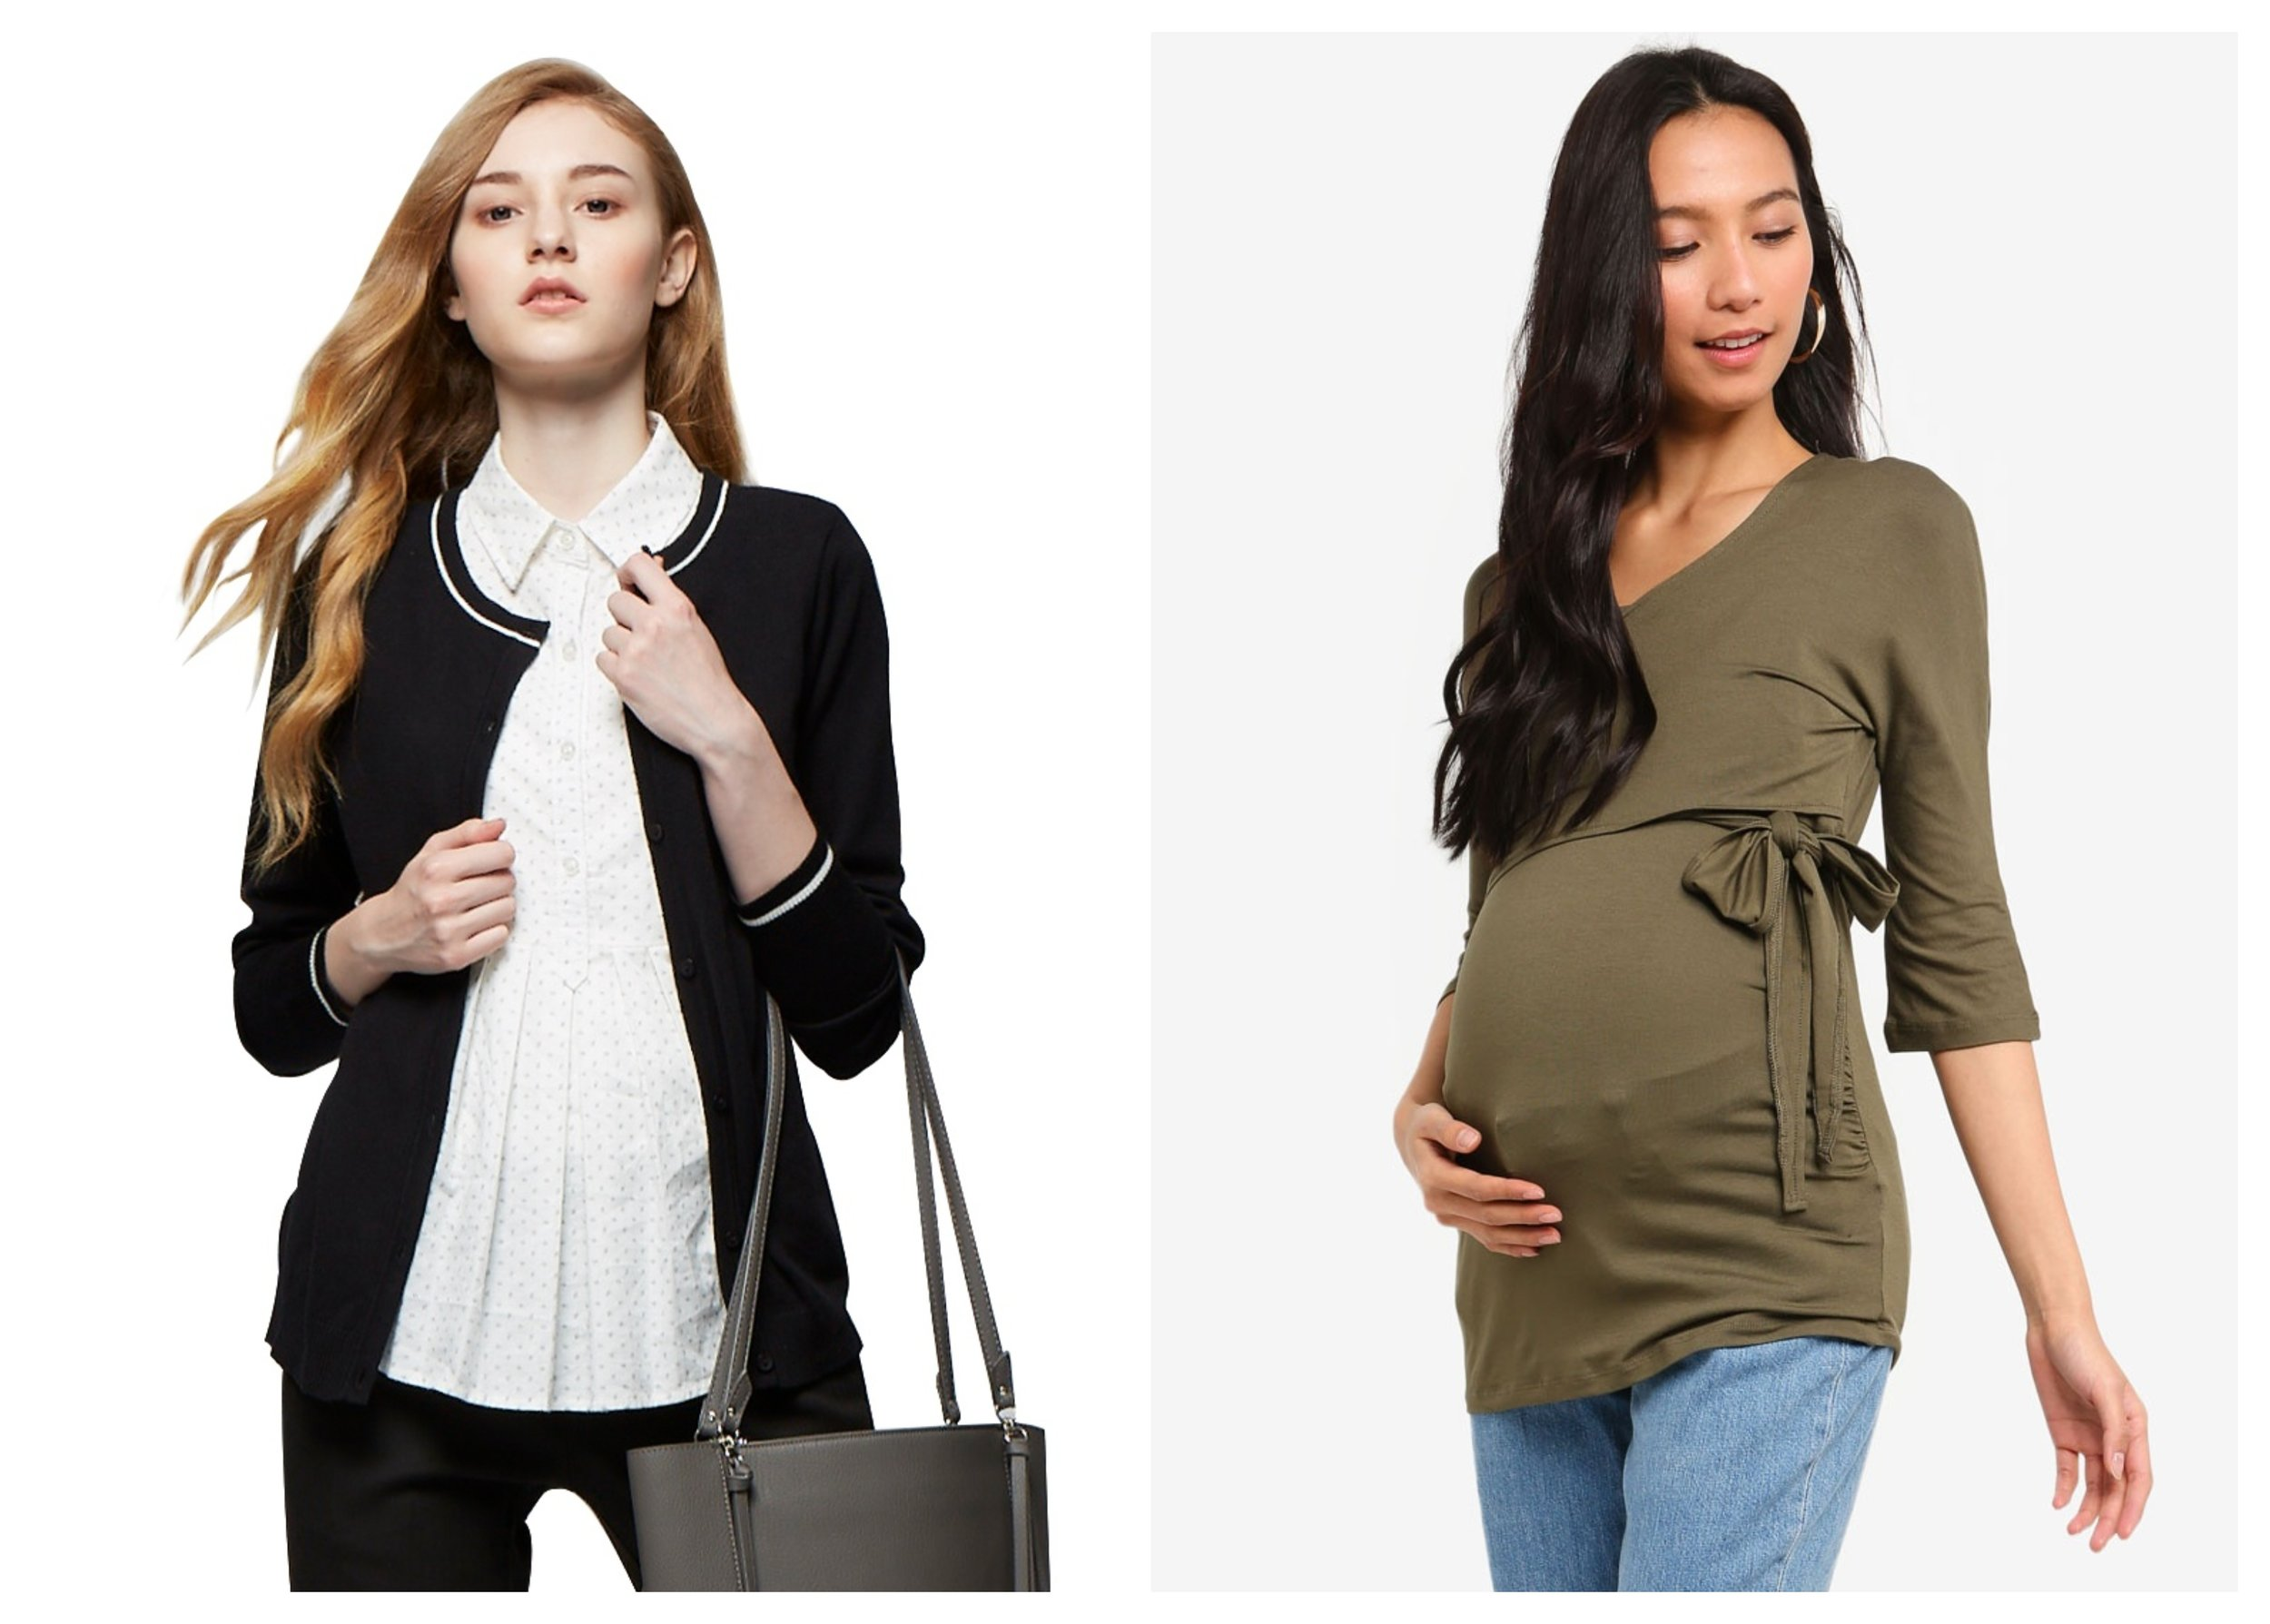 Mamaway 2 In 1 Maternity & Nursing Shirt With Cardigan    ,    Dorothy Perkins Maternity Khaki Ballet Wrap Nursing Top